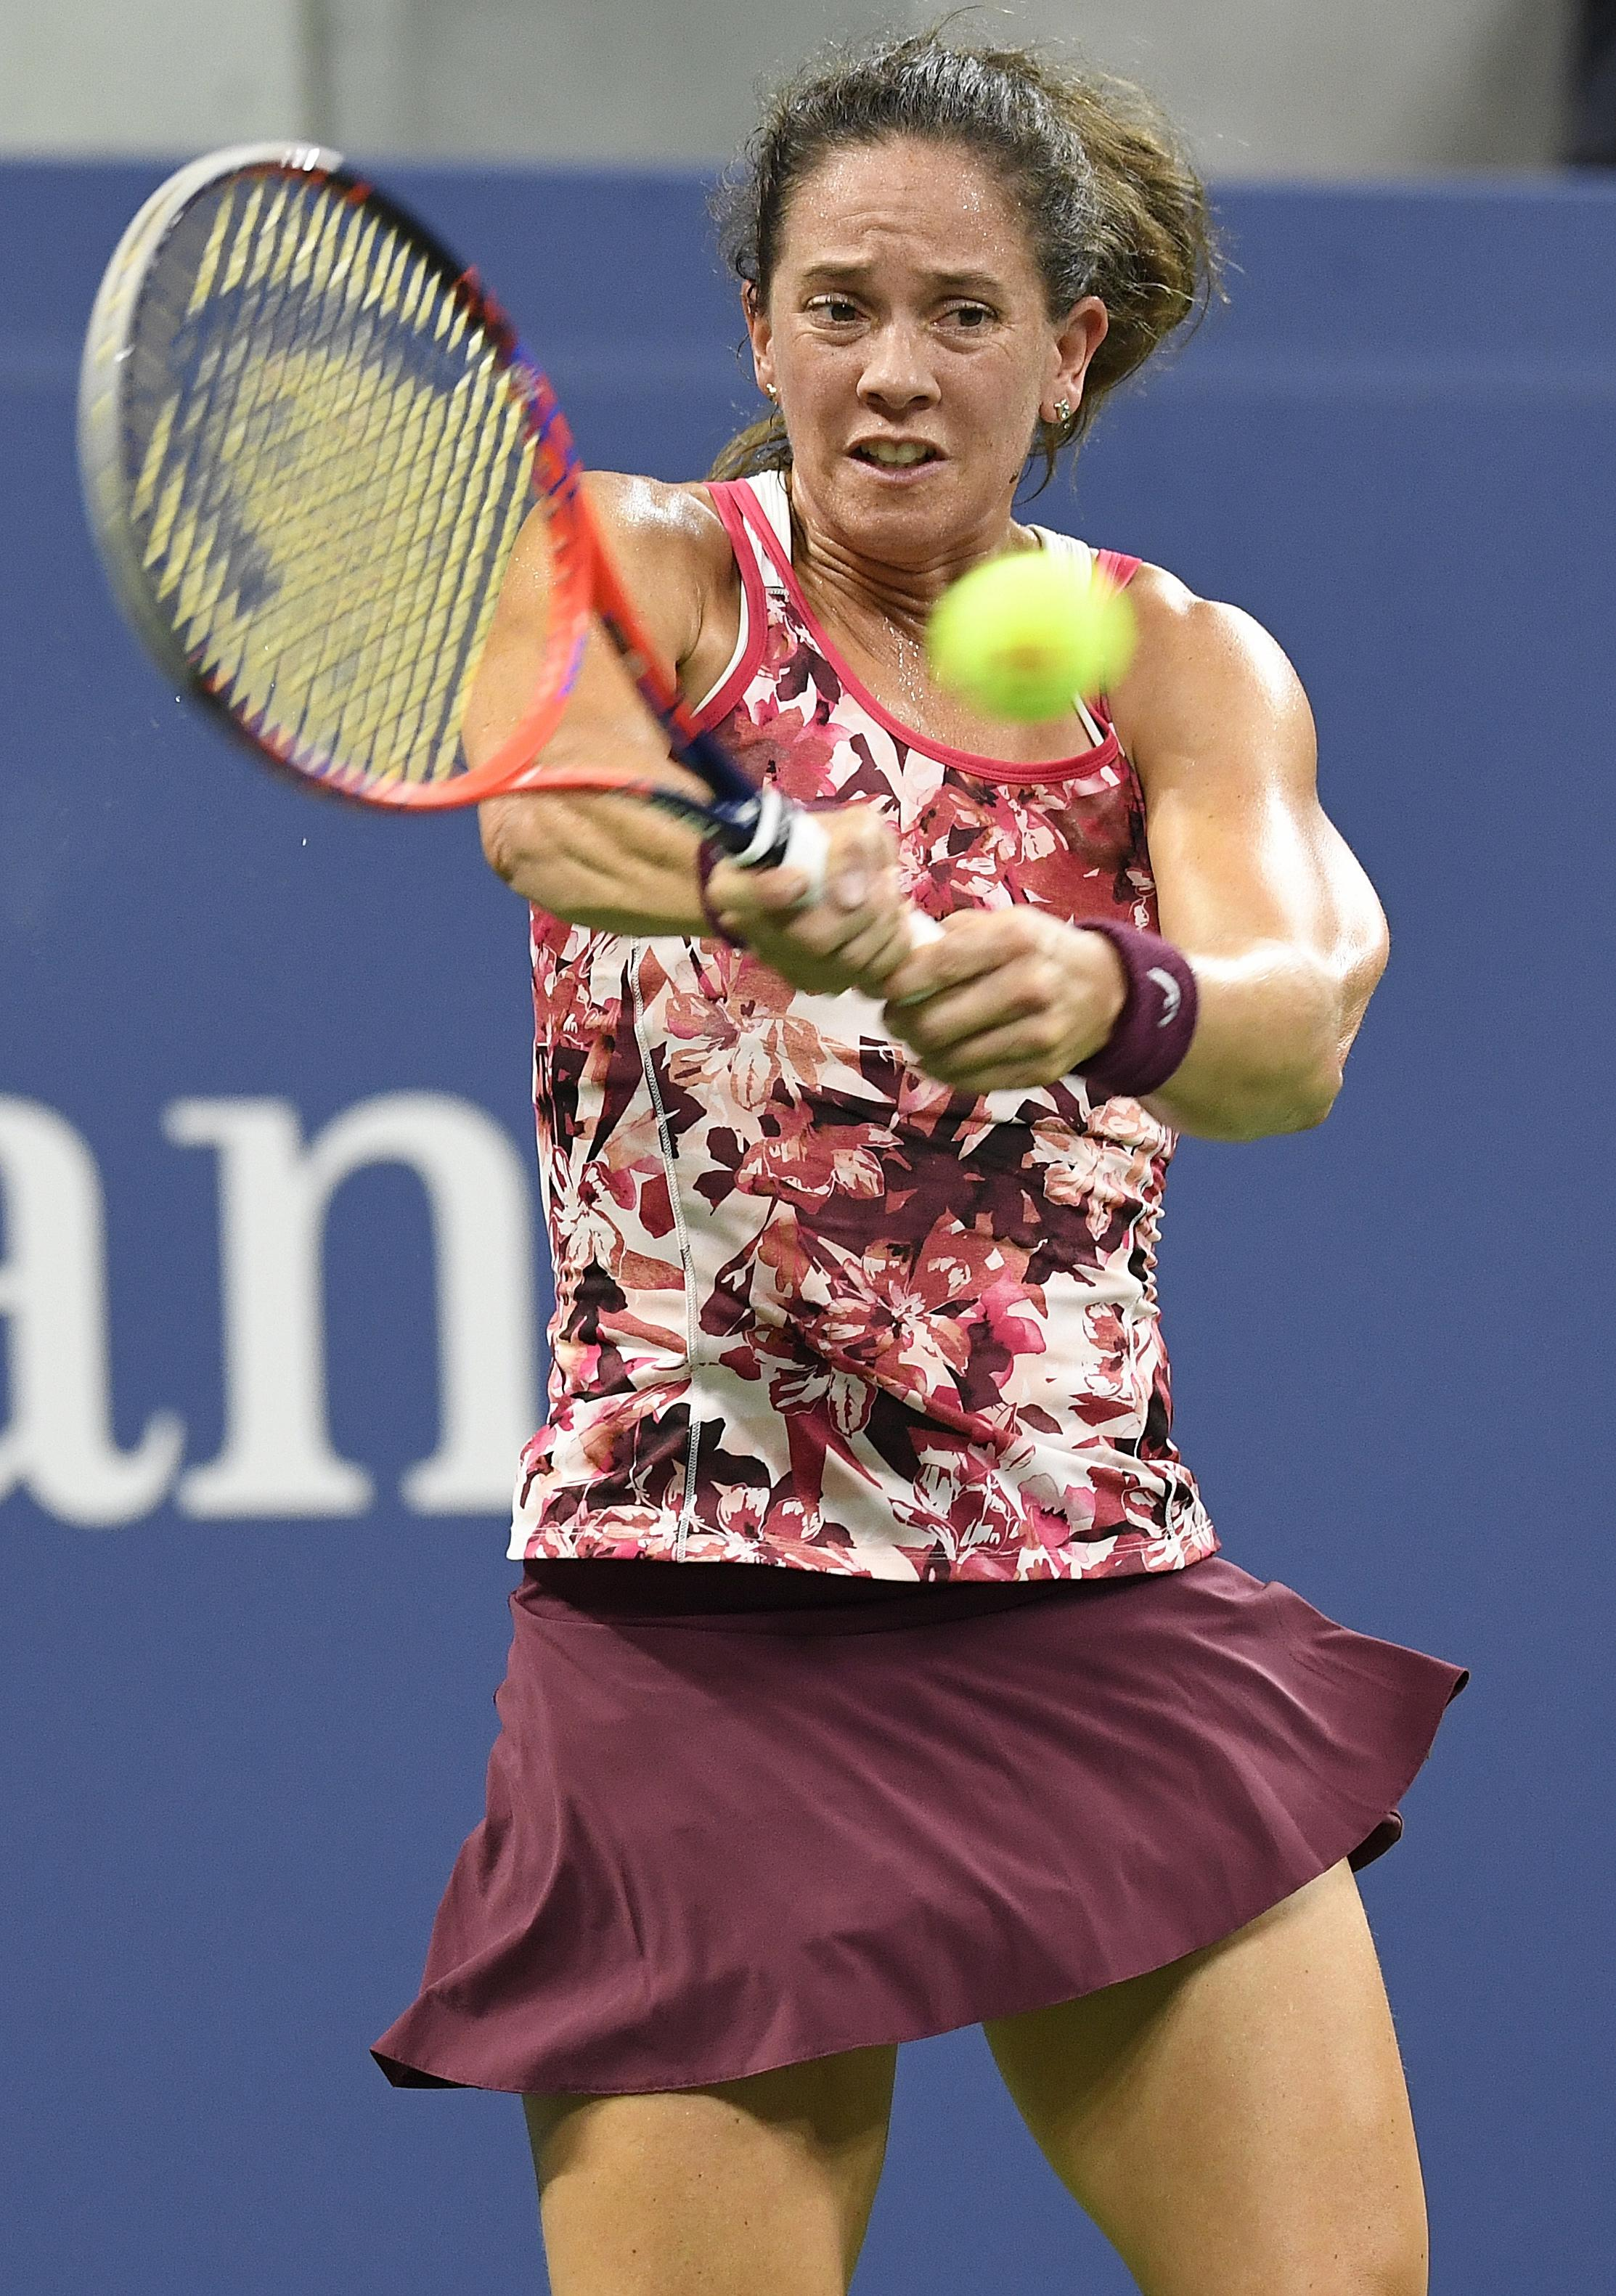 Patty Schnyder was playing in the US Open 21 years after her first appearance